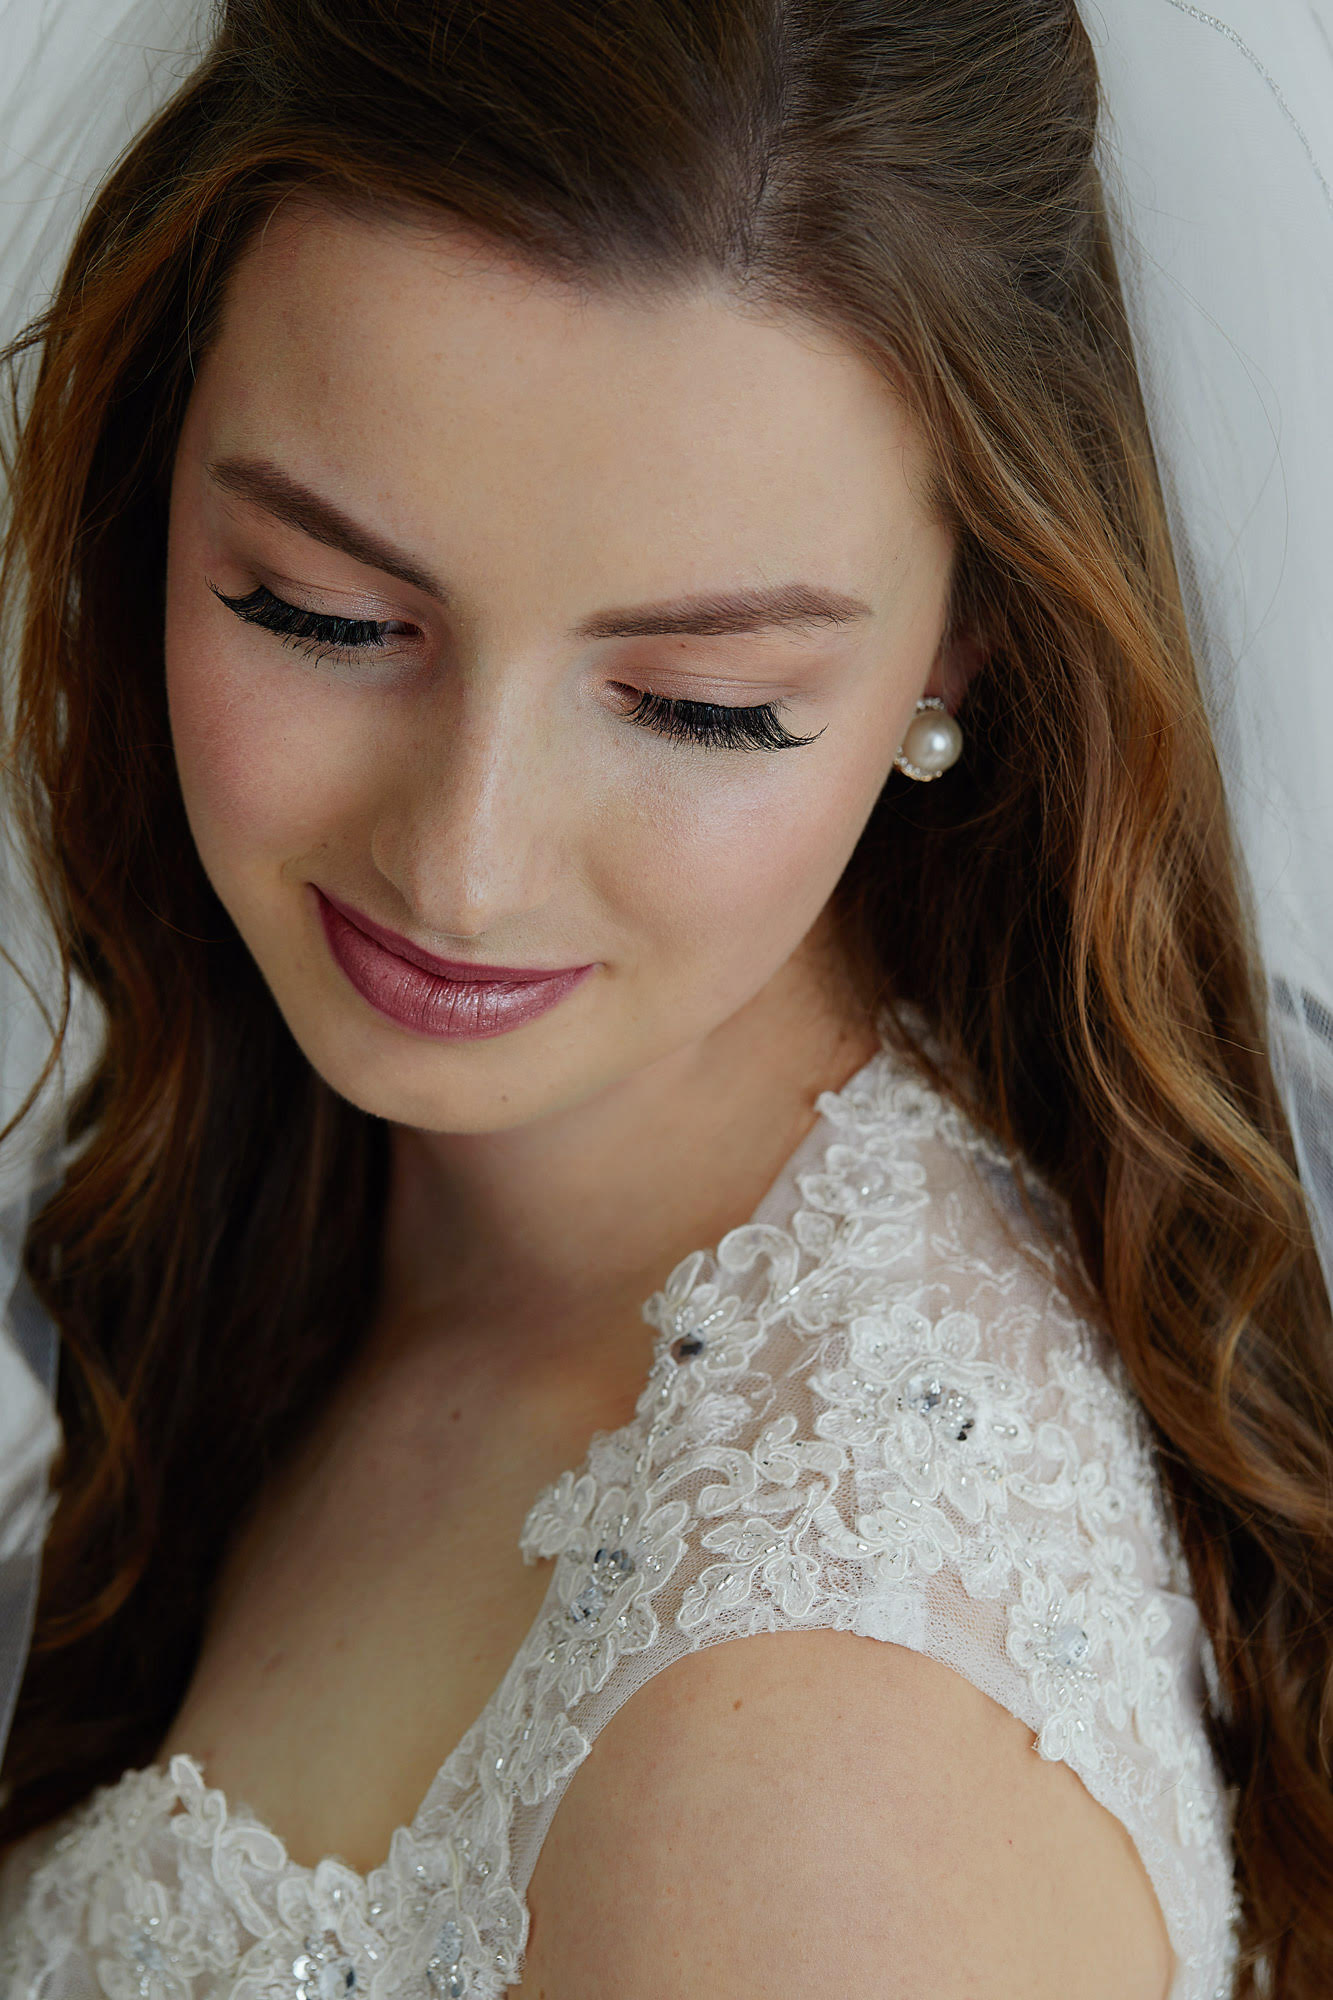 Lily Adkins Hair And Makeup Artistry